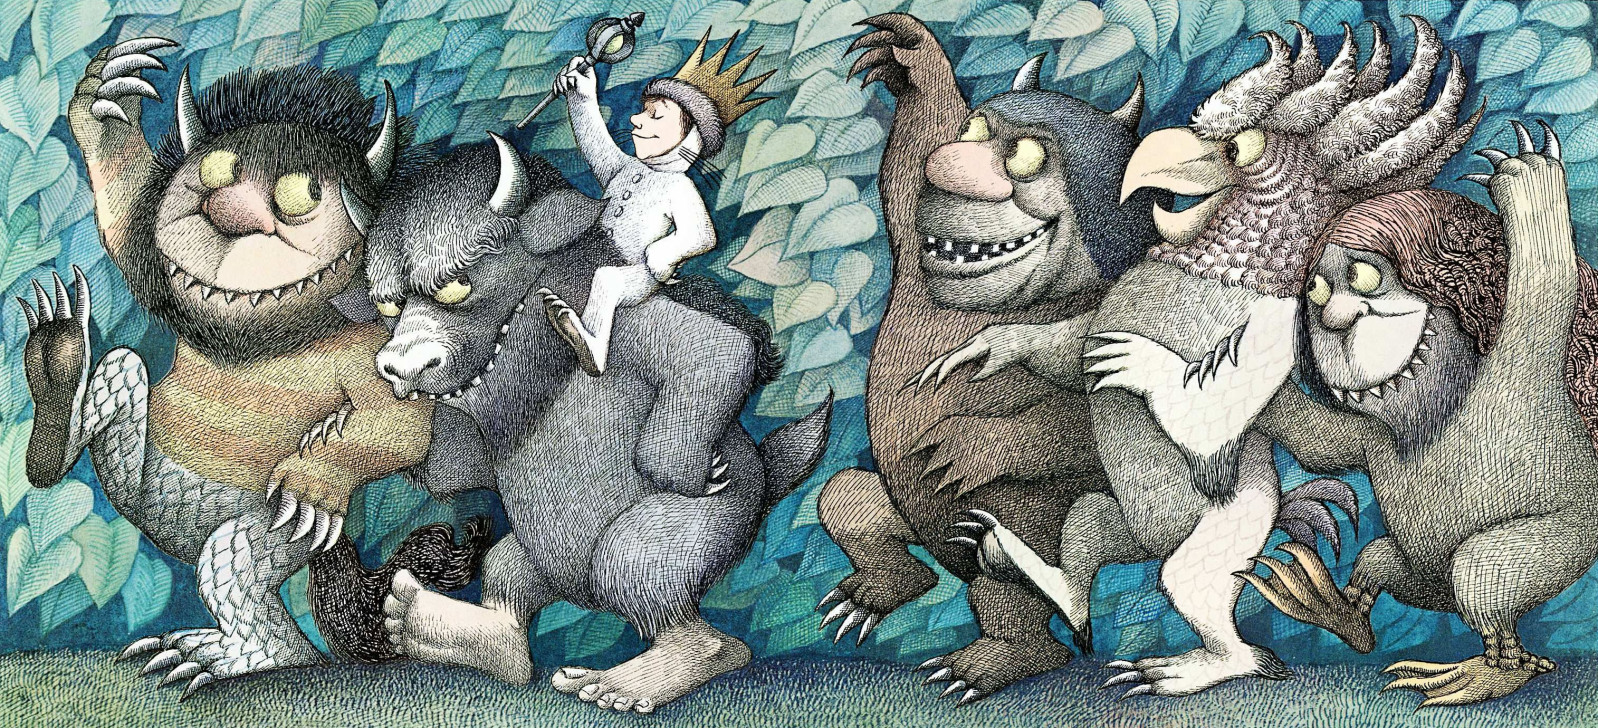 Symptoms…Where The Wild Things Are.